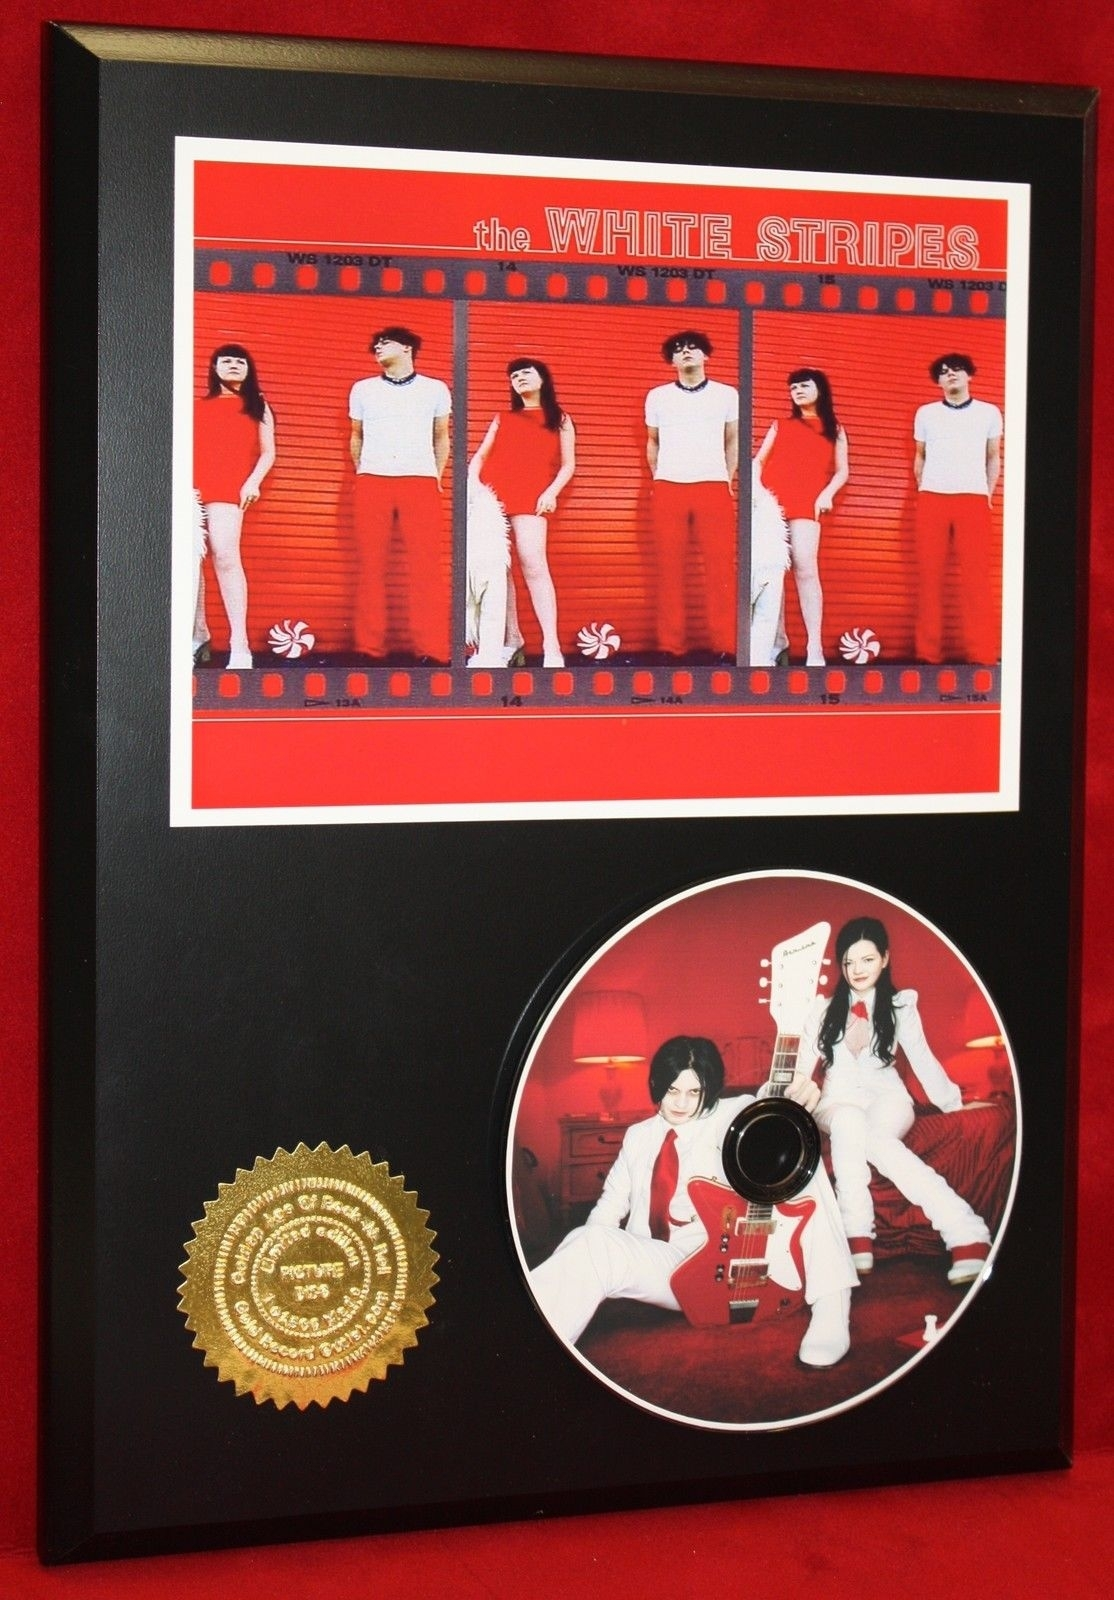 White Stripes Limited Edition Picture Cd Disc Collectible Rare Throughout Most Popular Limited Edition Wall Art (View 19 of 20)